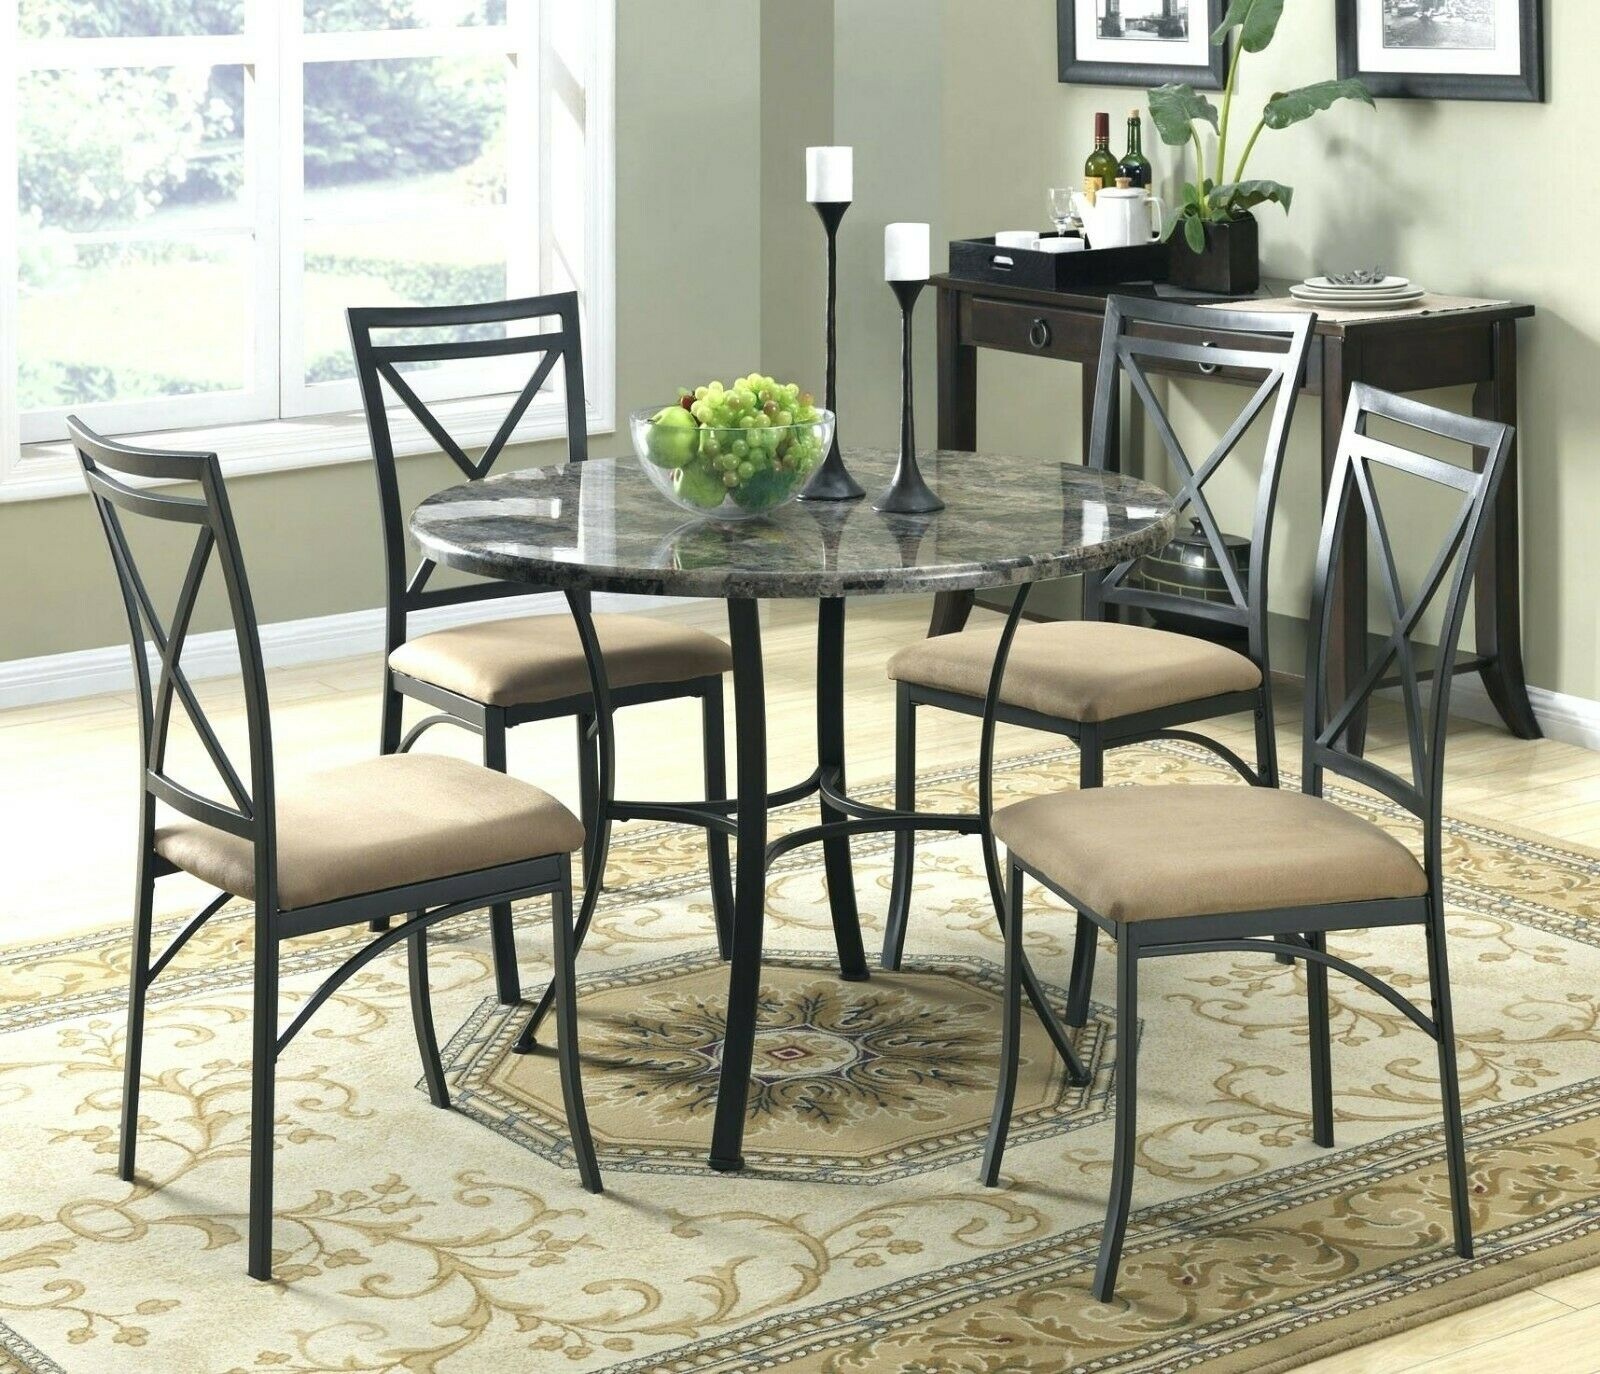 Dining Room Furniture Set Modern Contemporary Round Kitchen Table And Chairs For Sale Online